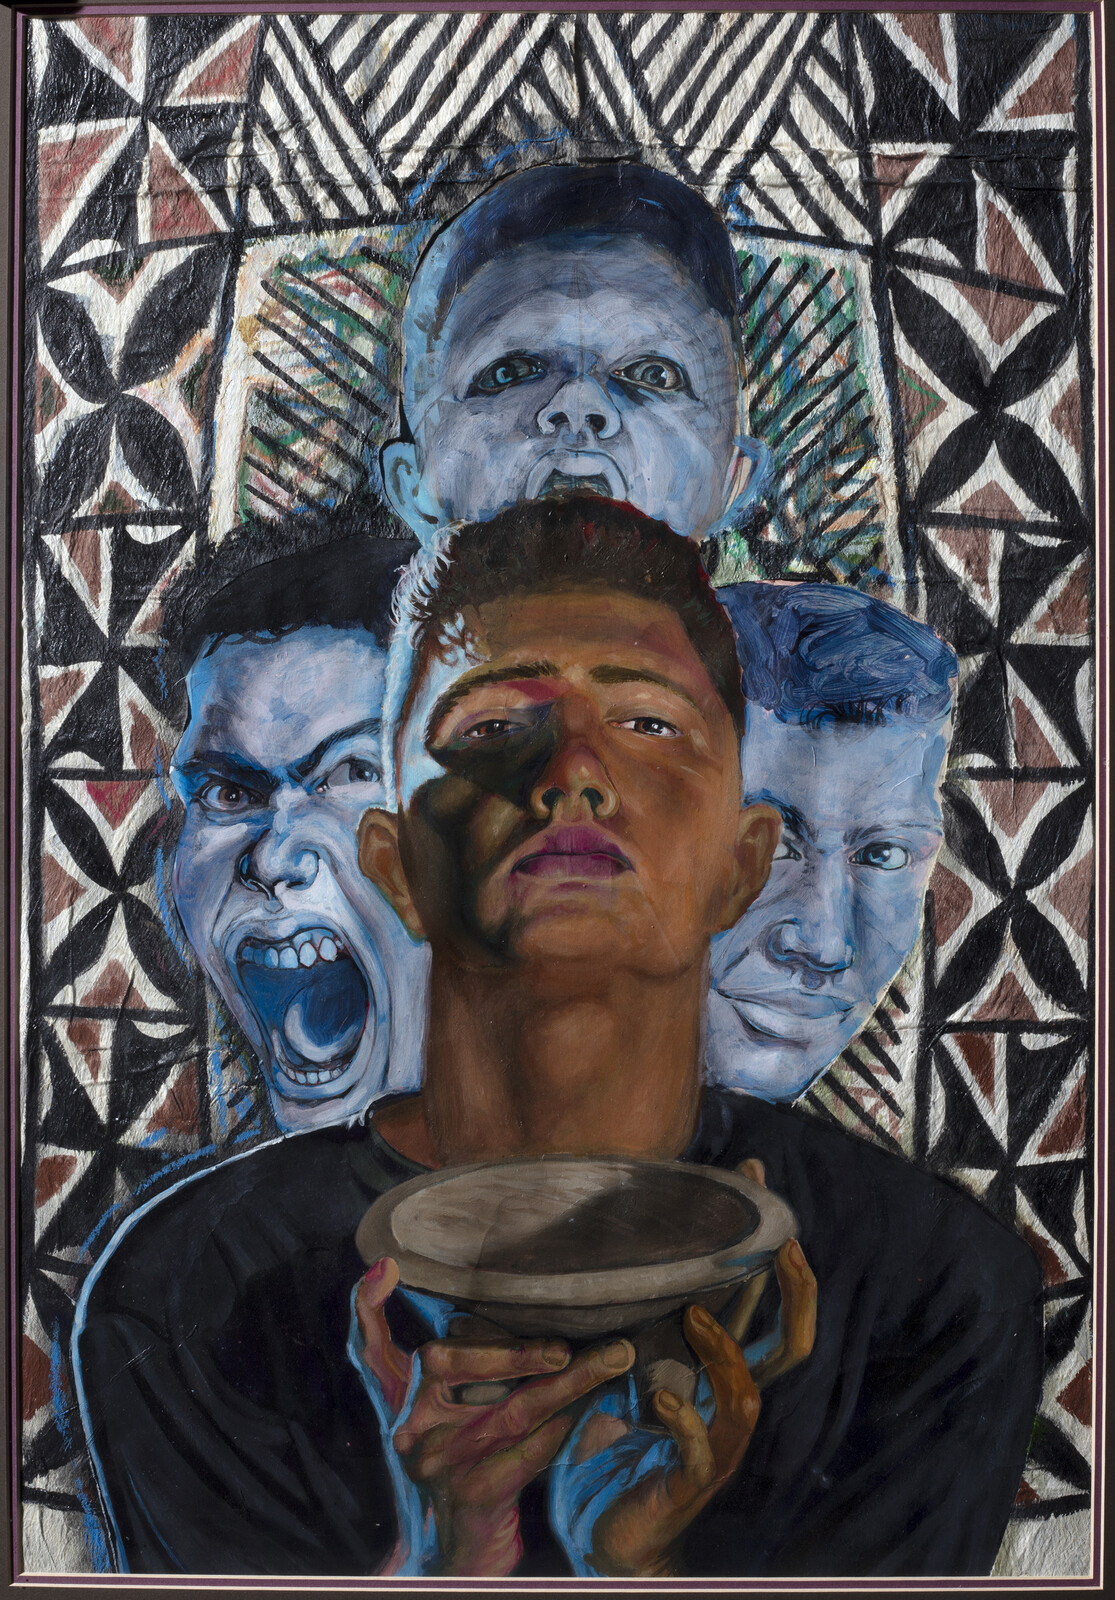 Self Portrait with Kava and friends